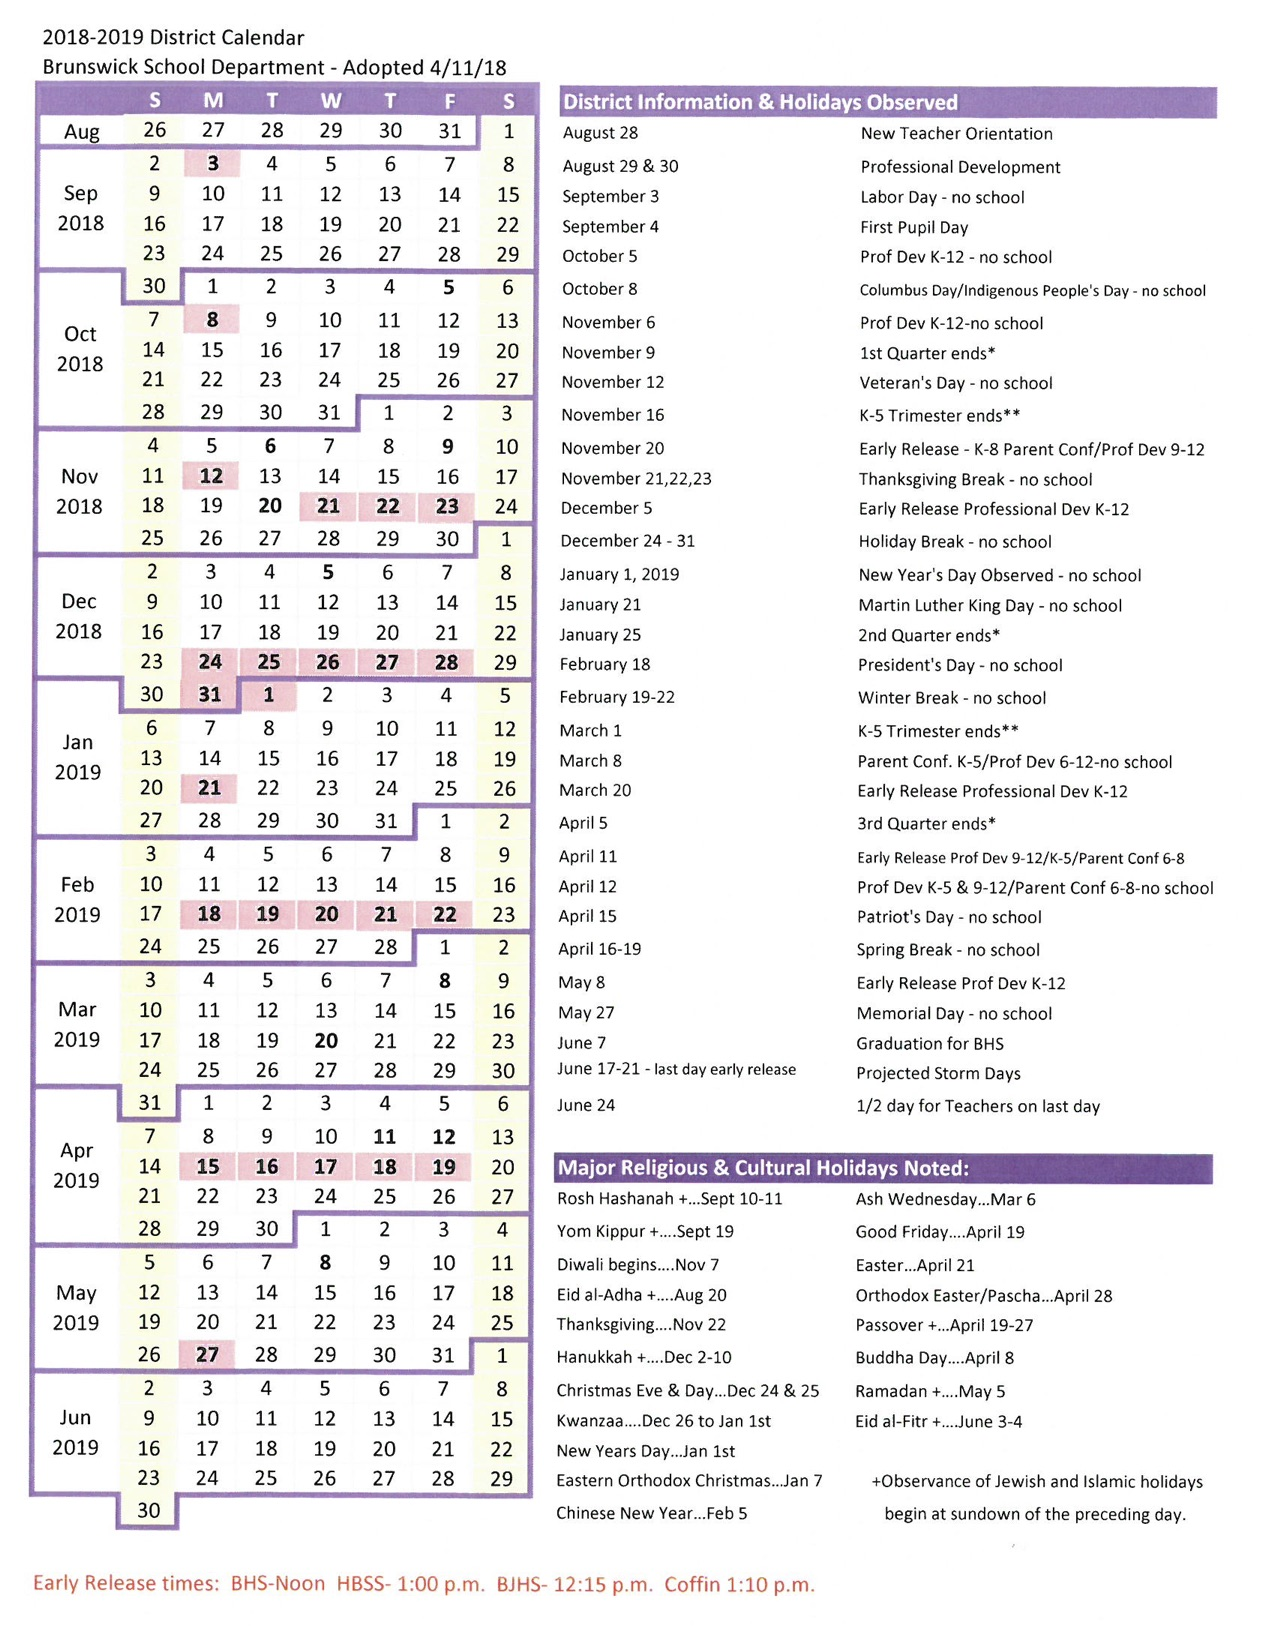 Brunswick School Department Adopted Calendar 2018-2019